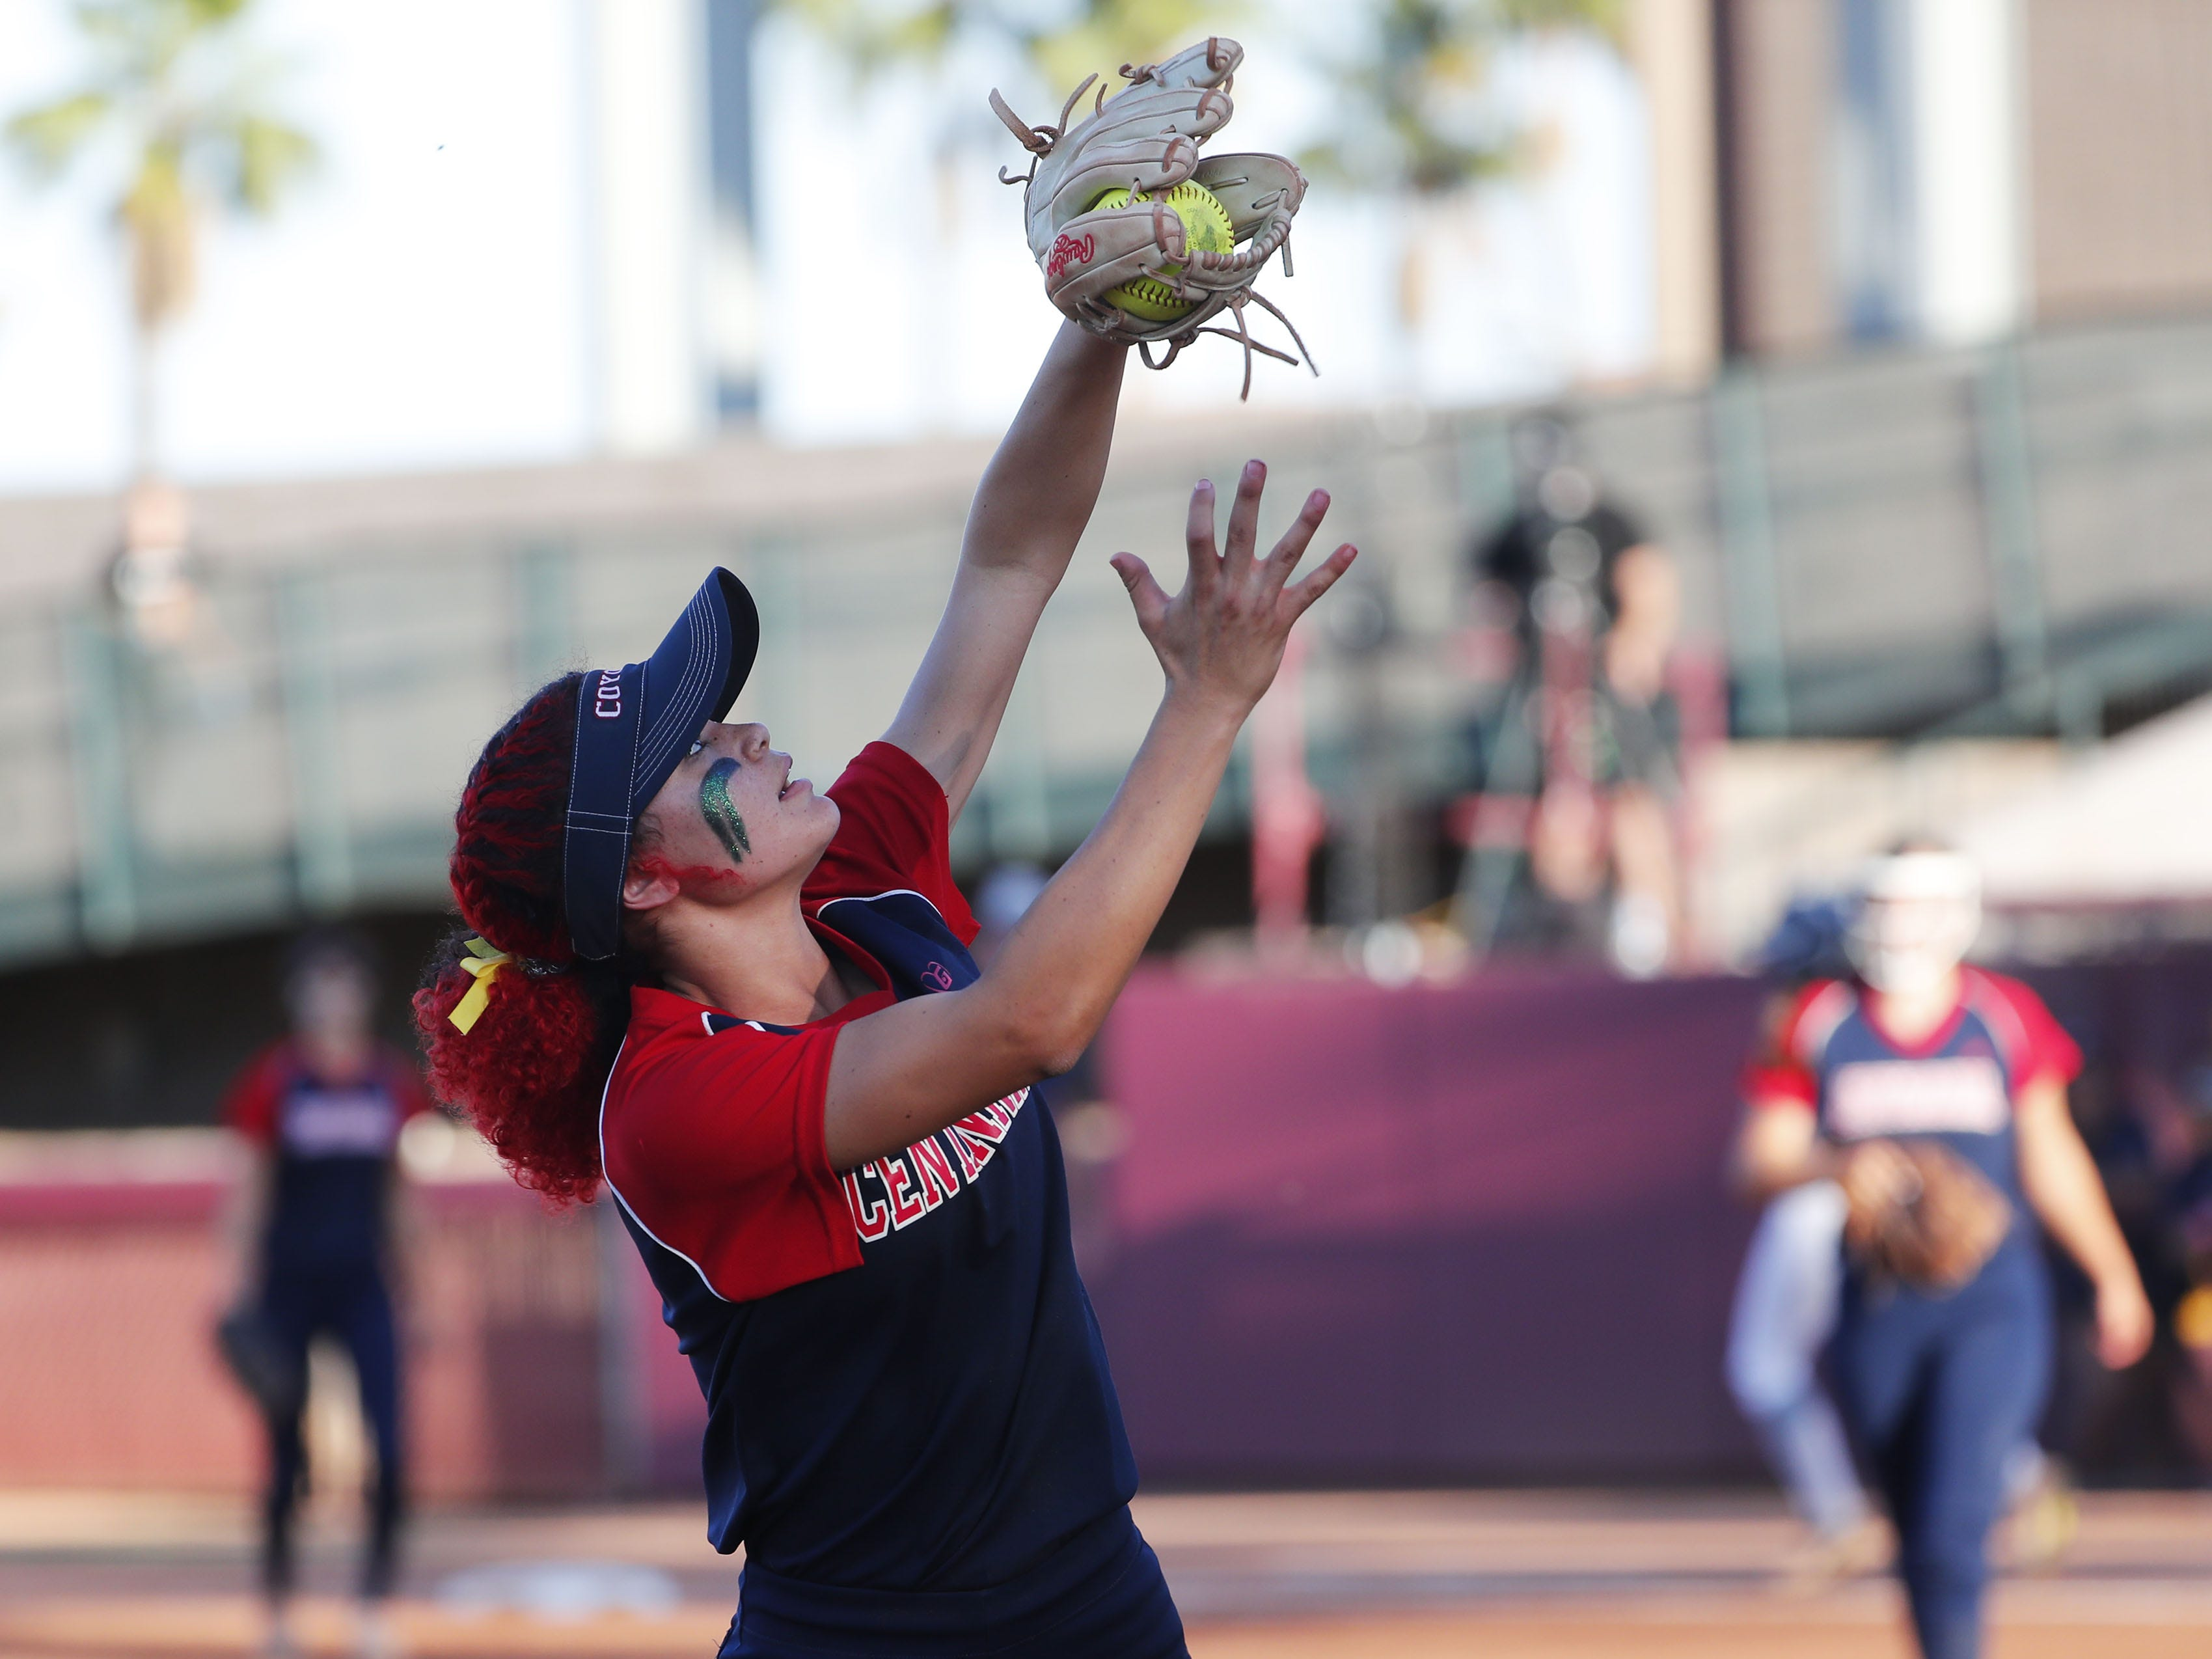 Centennial third baseman Adyson Maya (4) makes a catch against Ironwood Ridge during the 5A State Softball Championship in Tempe, Ariz. May 13, 2019.